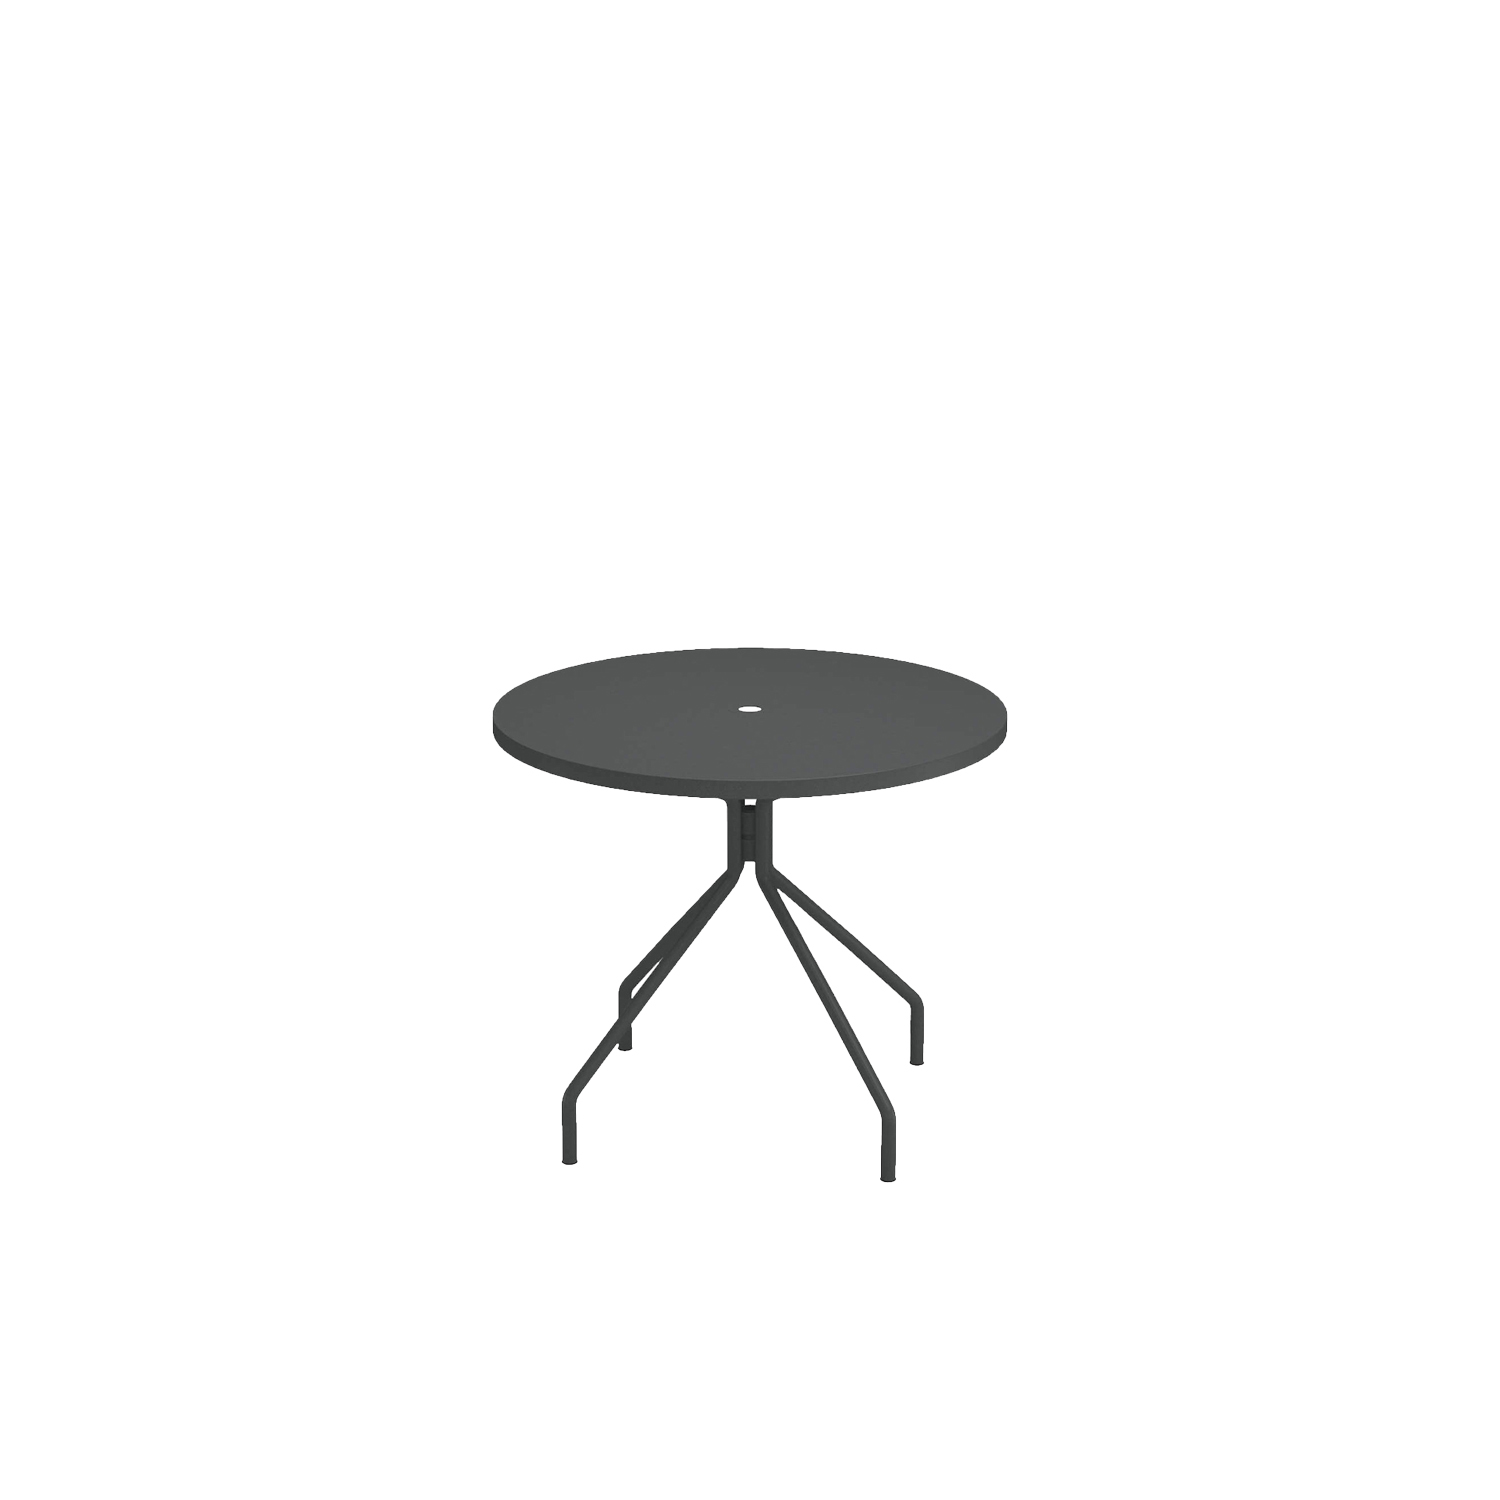 Solid Round Table - A family of essential-looking tables designed to furnish any kind of outdoor space with simplicity: Solid is characterised by the functional sheet metal plate made from steel, for the most varied use needs.